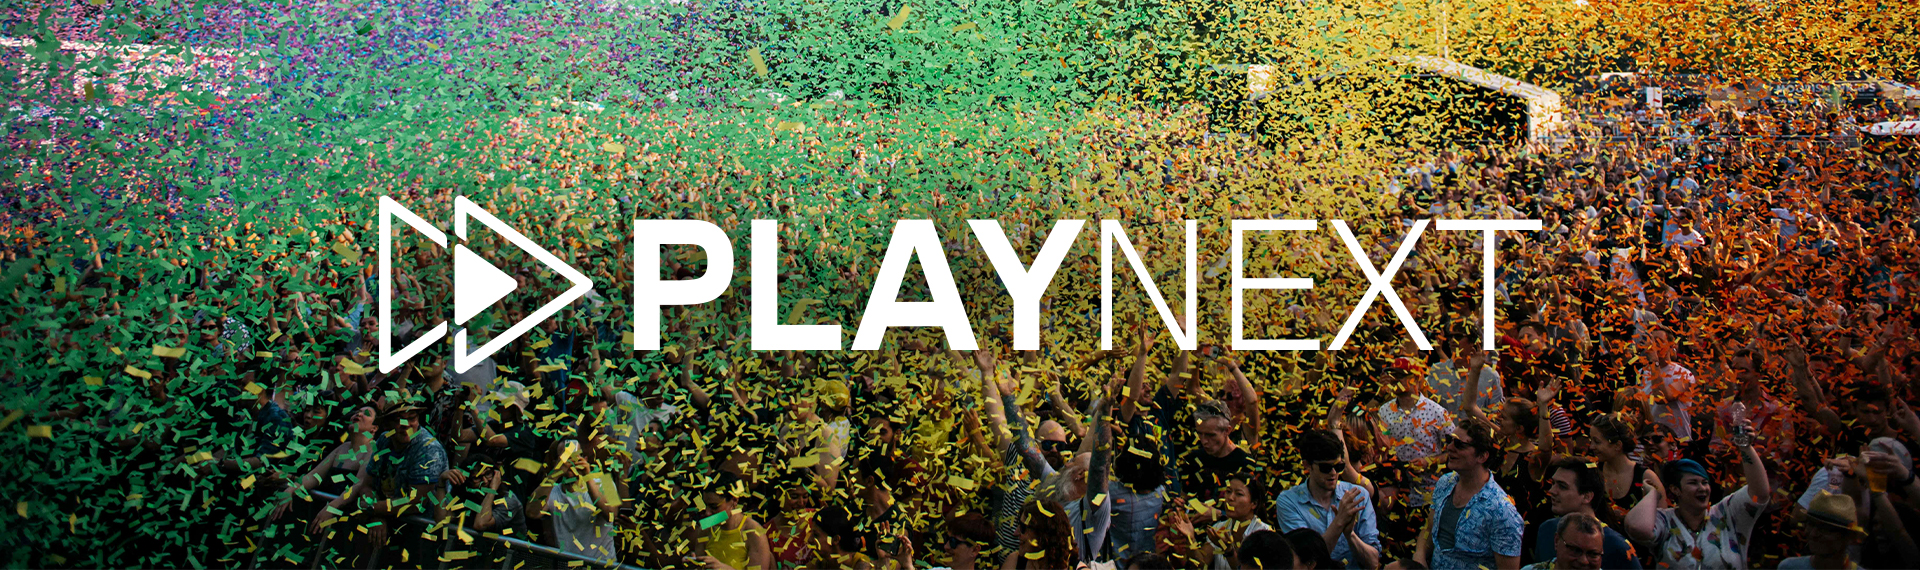 BMW Playnext at the All Points East festival